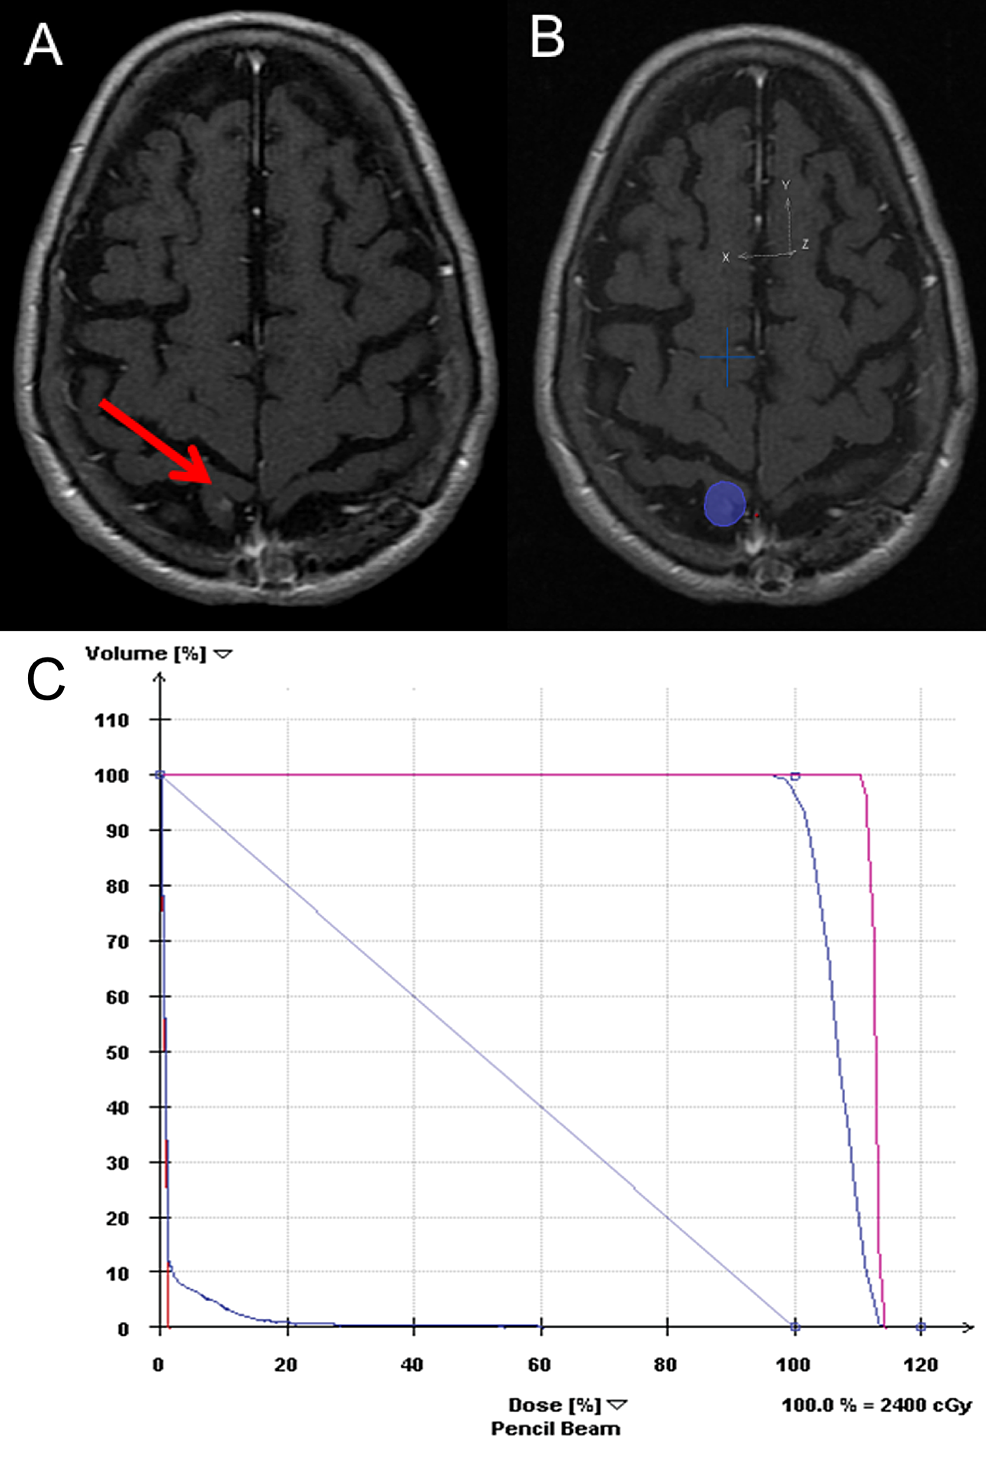 New-postcentral-gyrus-lesion-1-year-following-initial-treatment